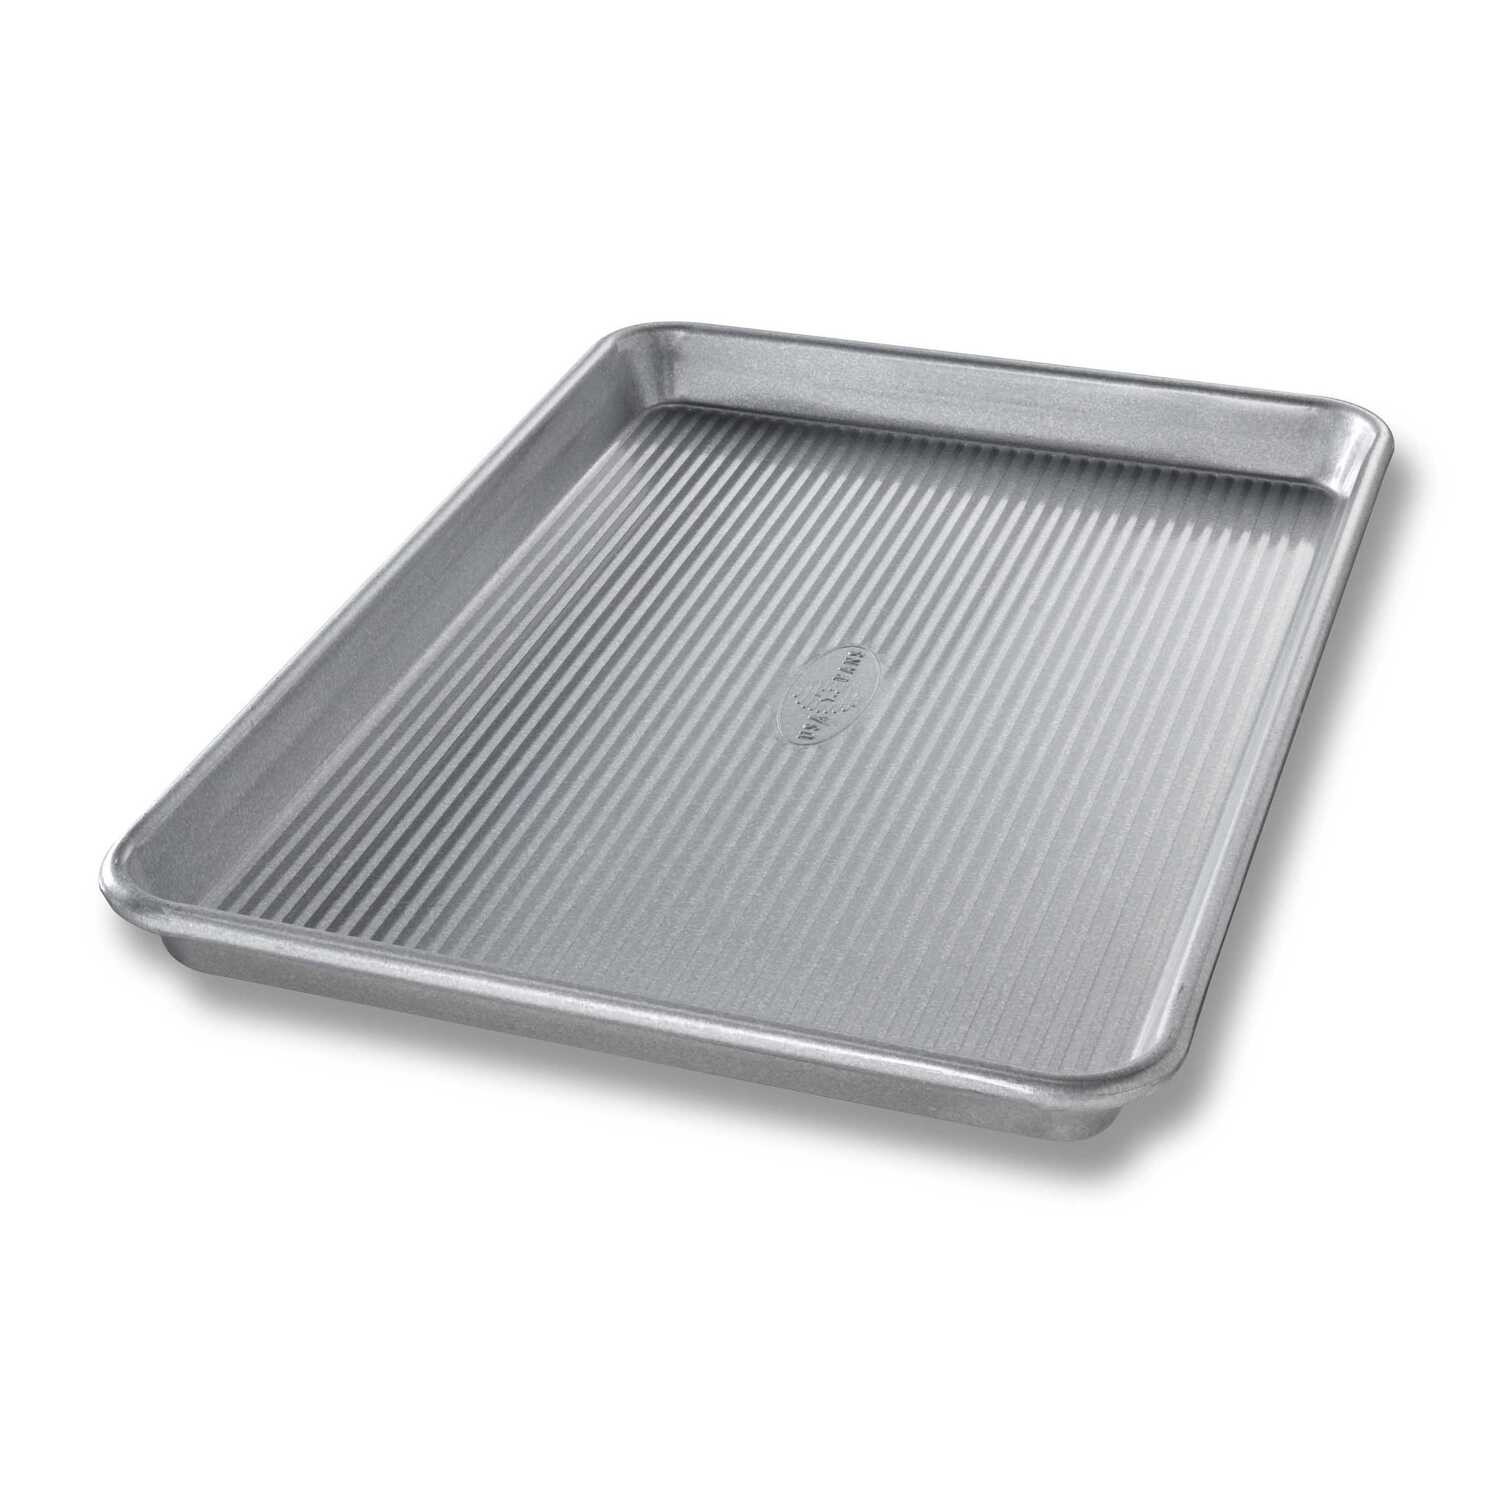 USA Pan  9-3/4 in. W x 14-3/4 in. L Jelly Roll Pan  Silver